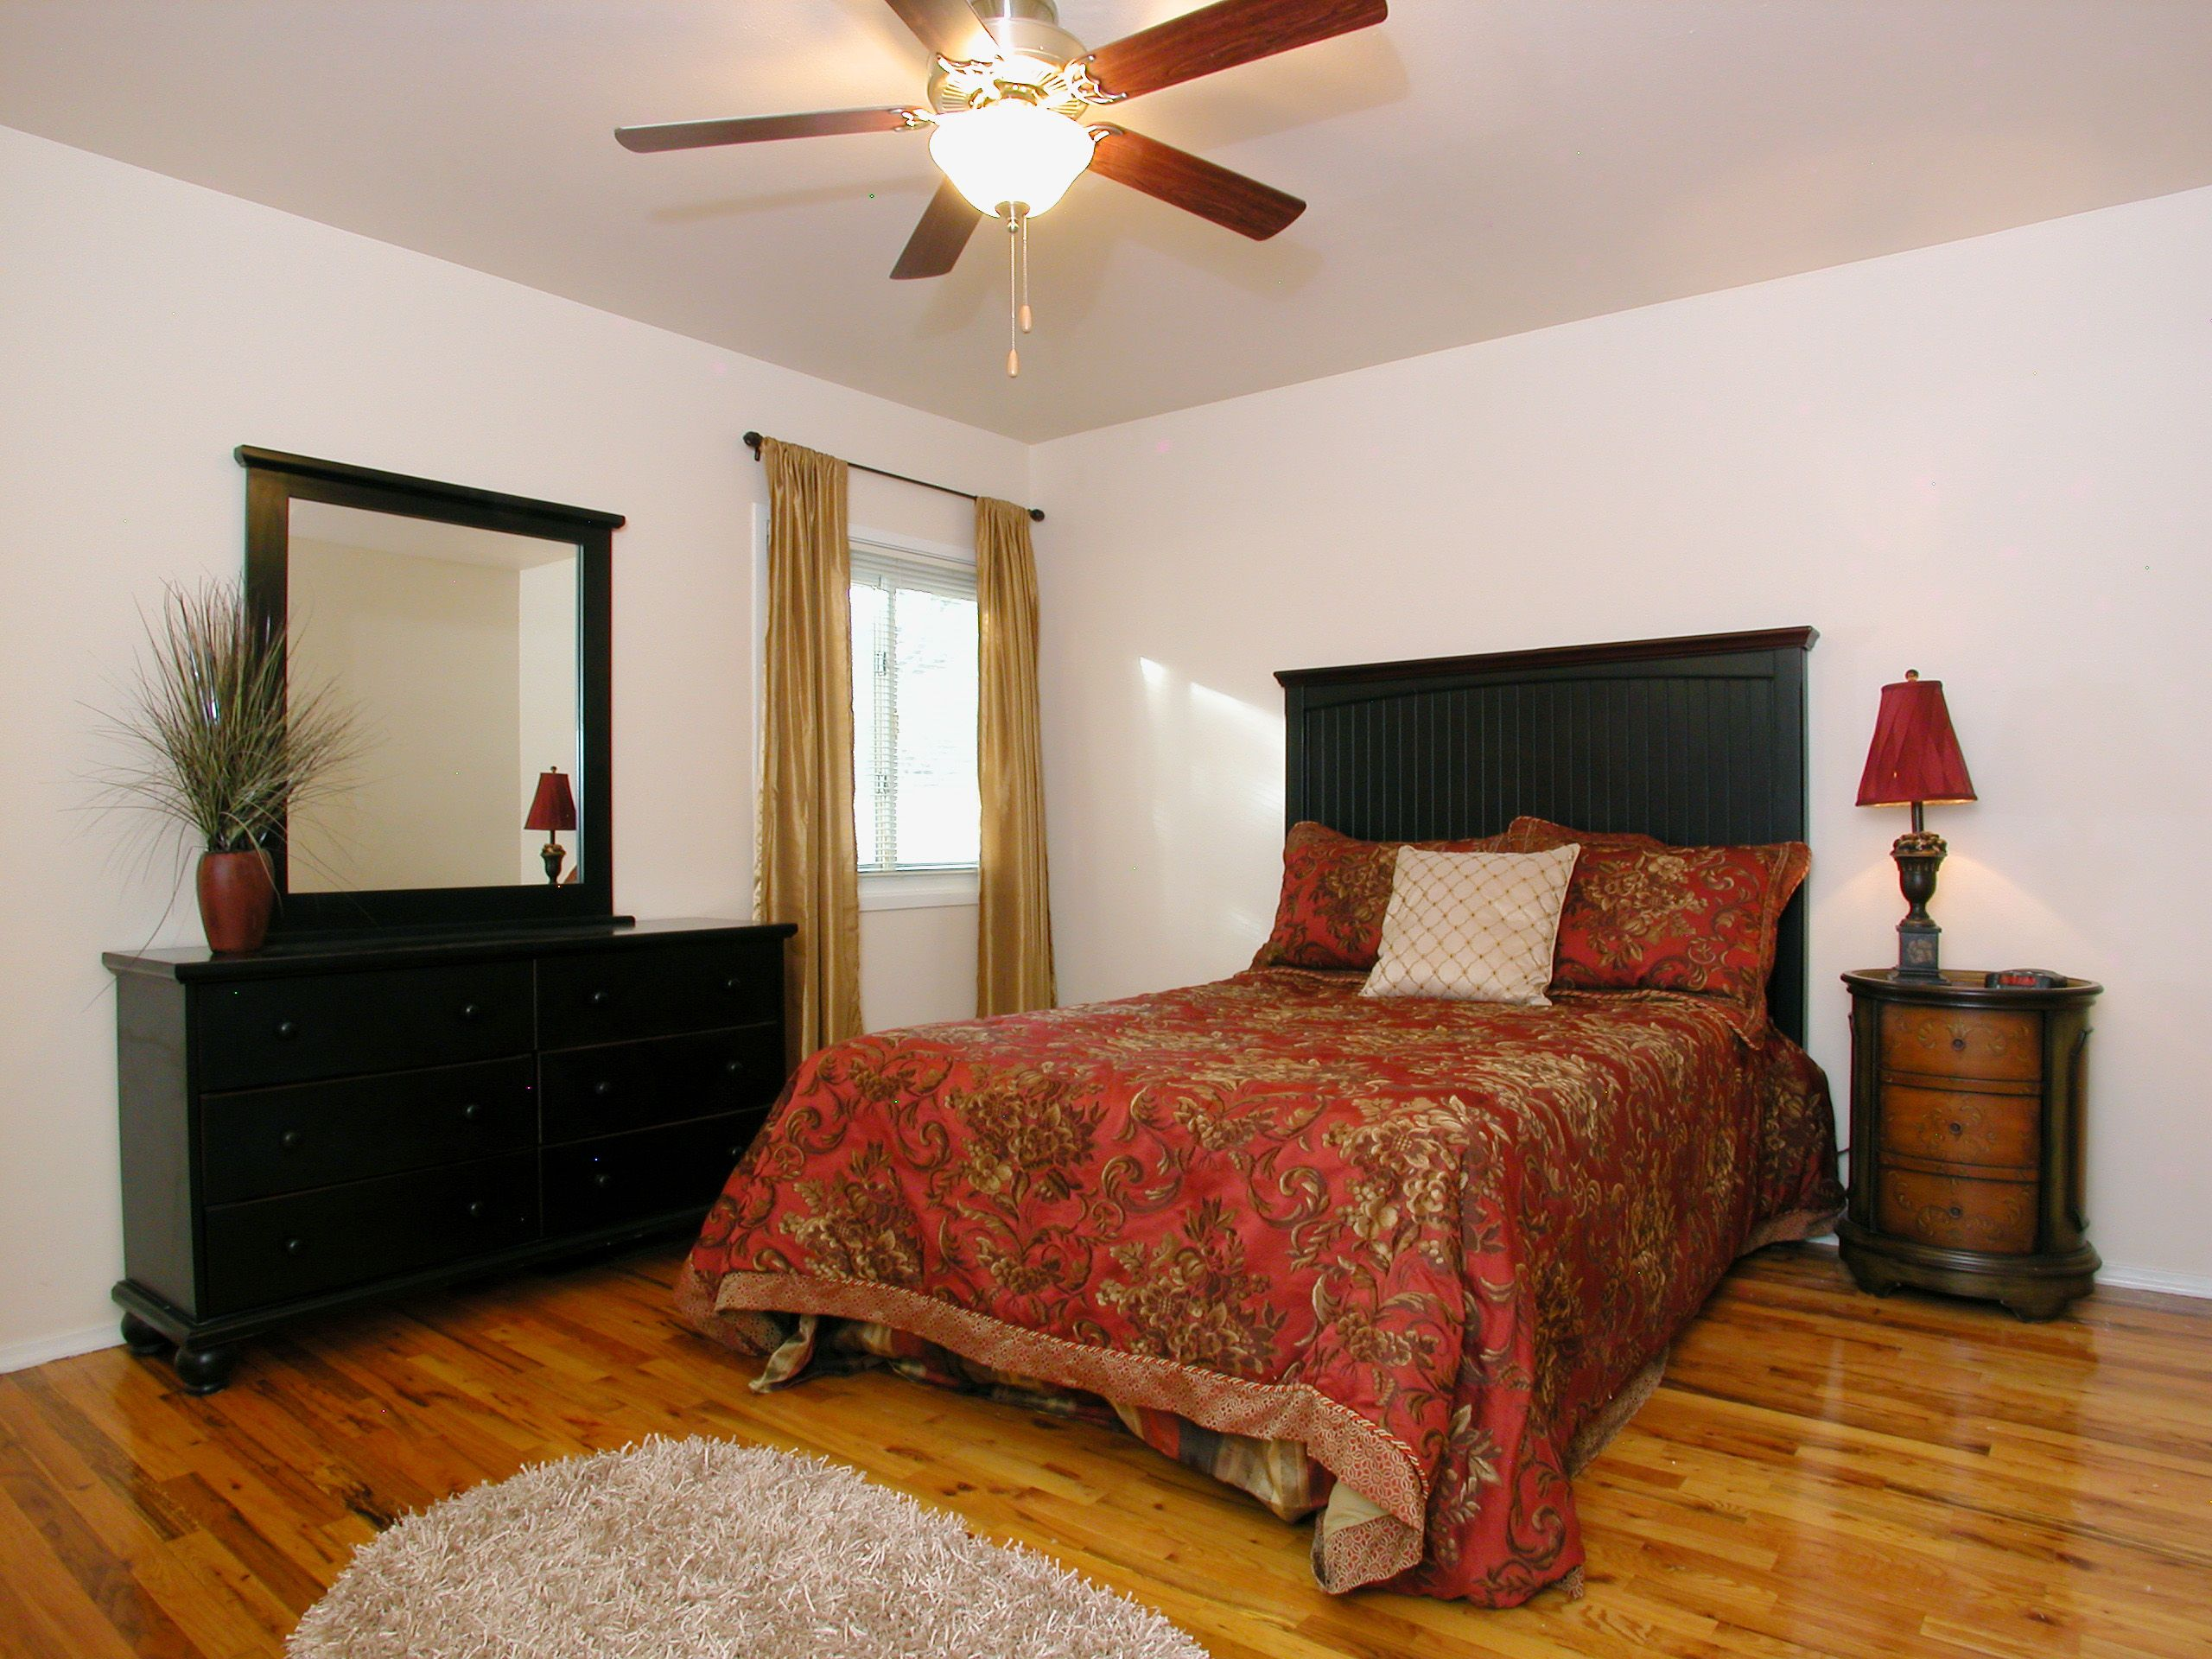 Pine Valley Home Bedroom | Home bedroom, Home, Home decor